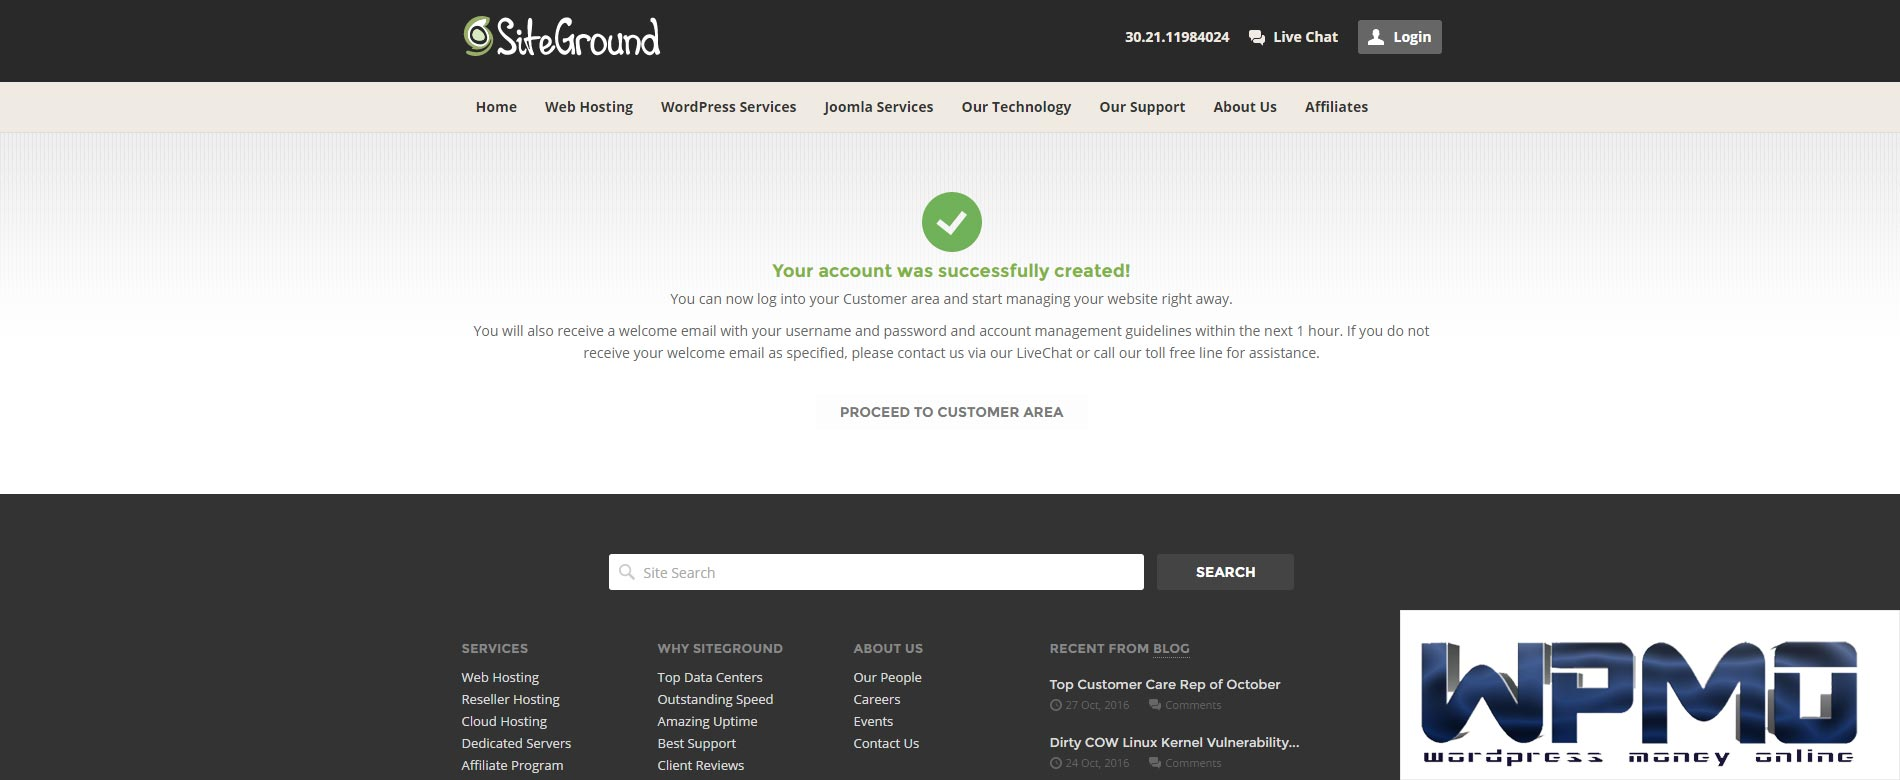 That's it - Your account was successfully created - Create SiteGround Hosting Account